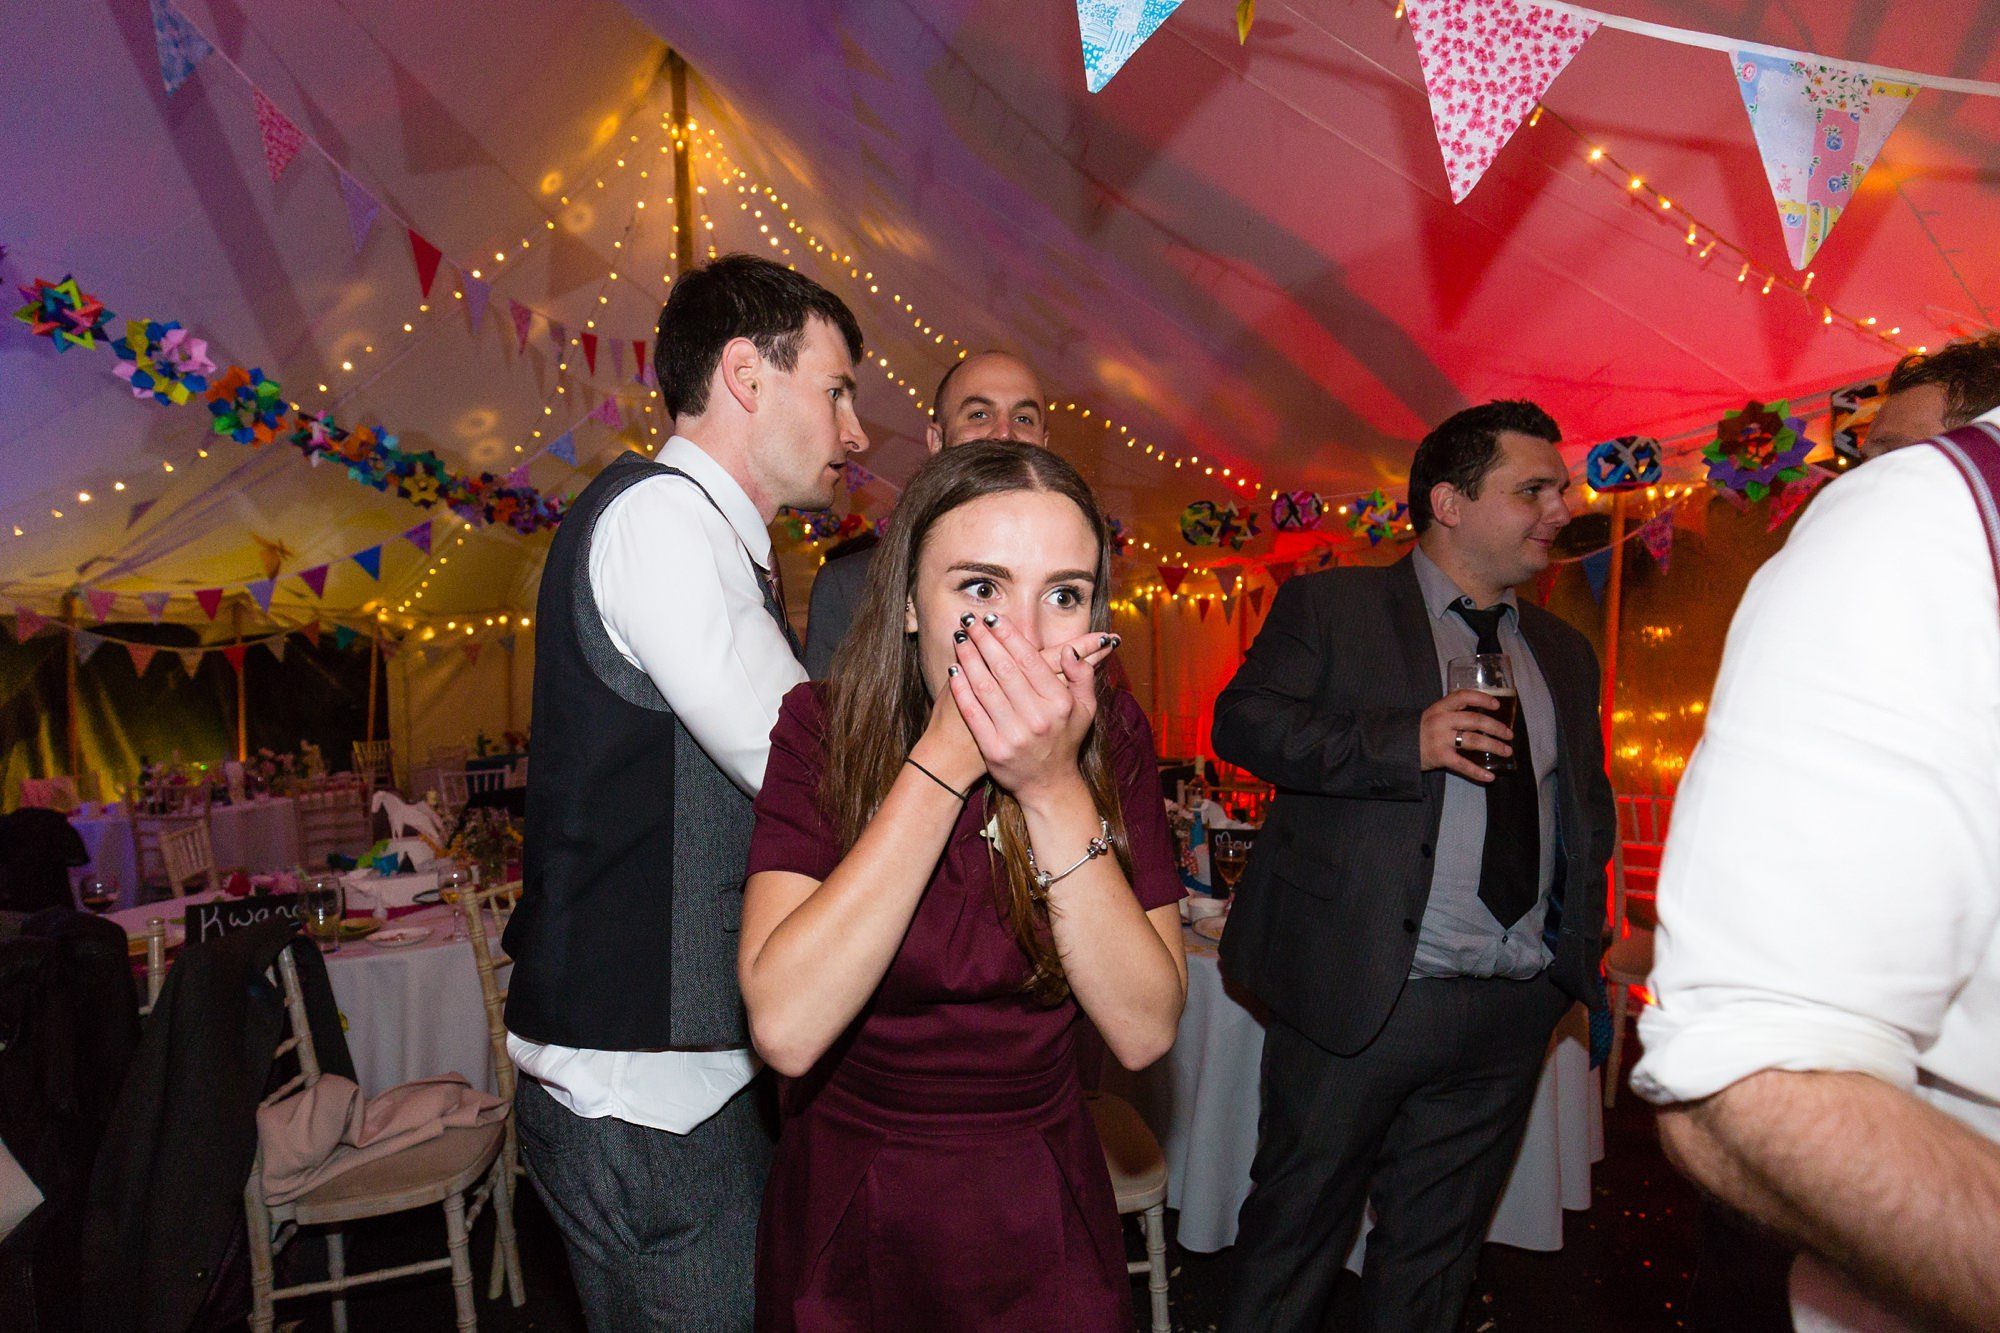 Guest laughs and covers face during the party Derwentwater Independent Hostel Wedding